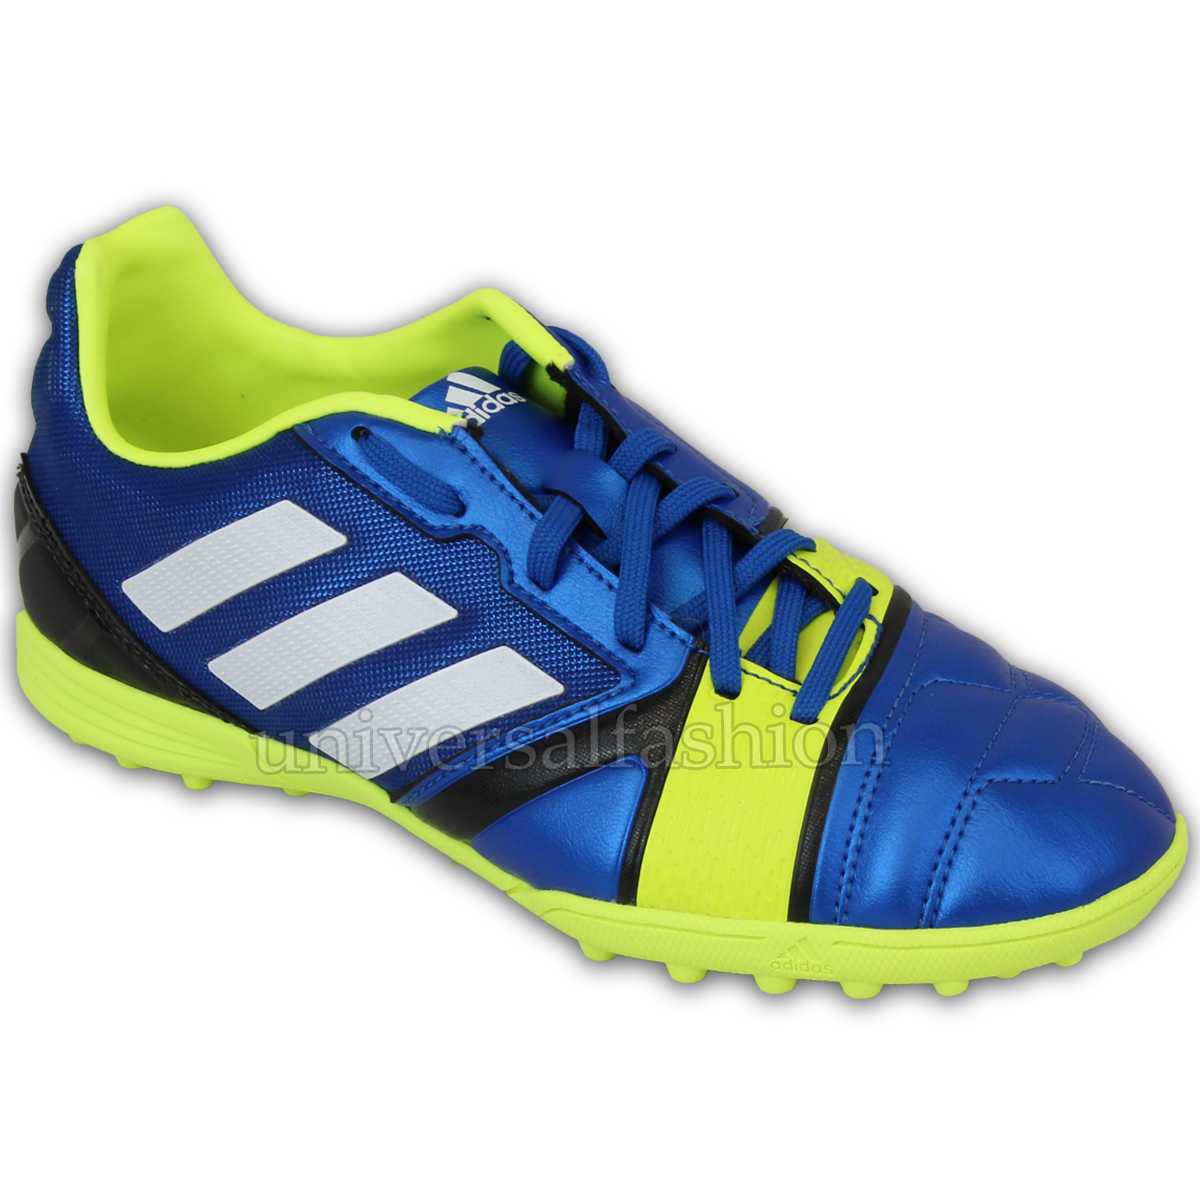 Boys ADIDAS Trainers Kids Football Soccer Astro Turf Shoes ...